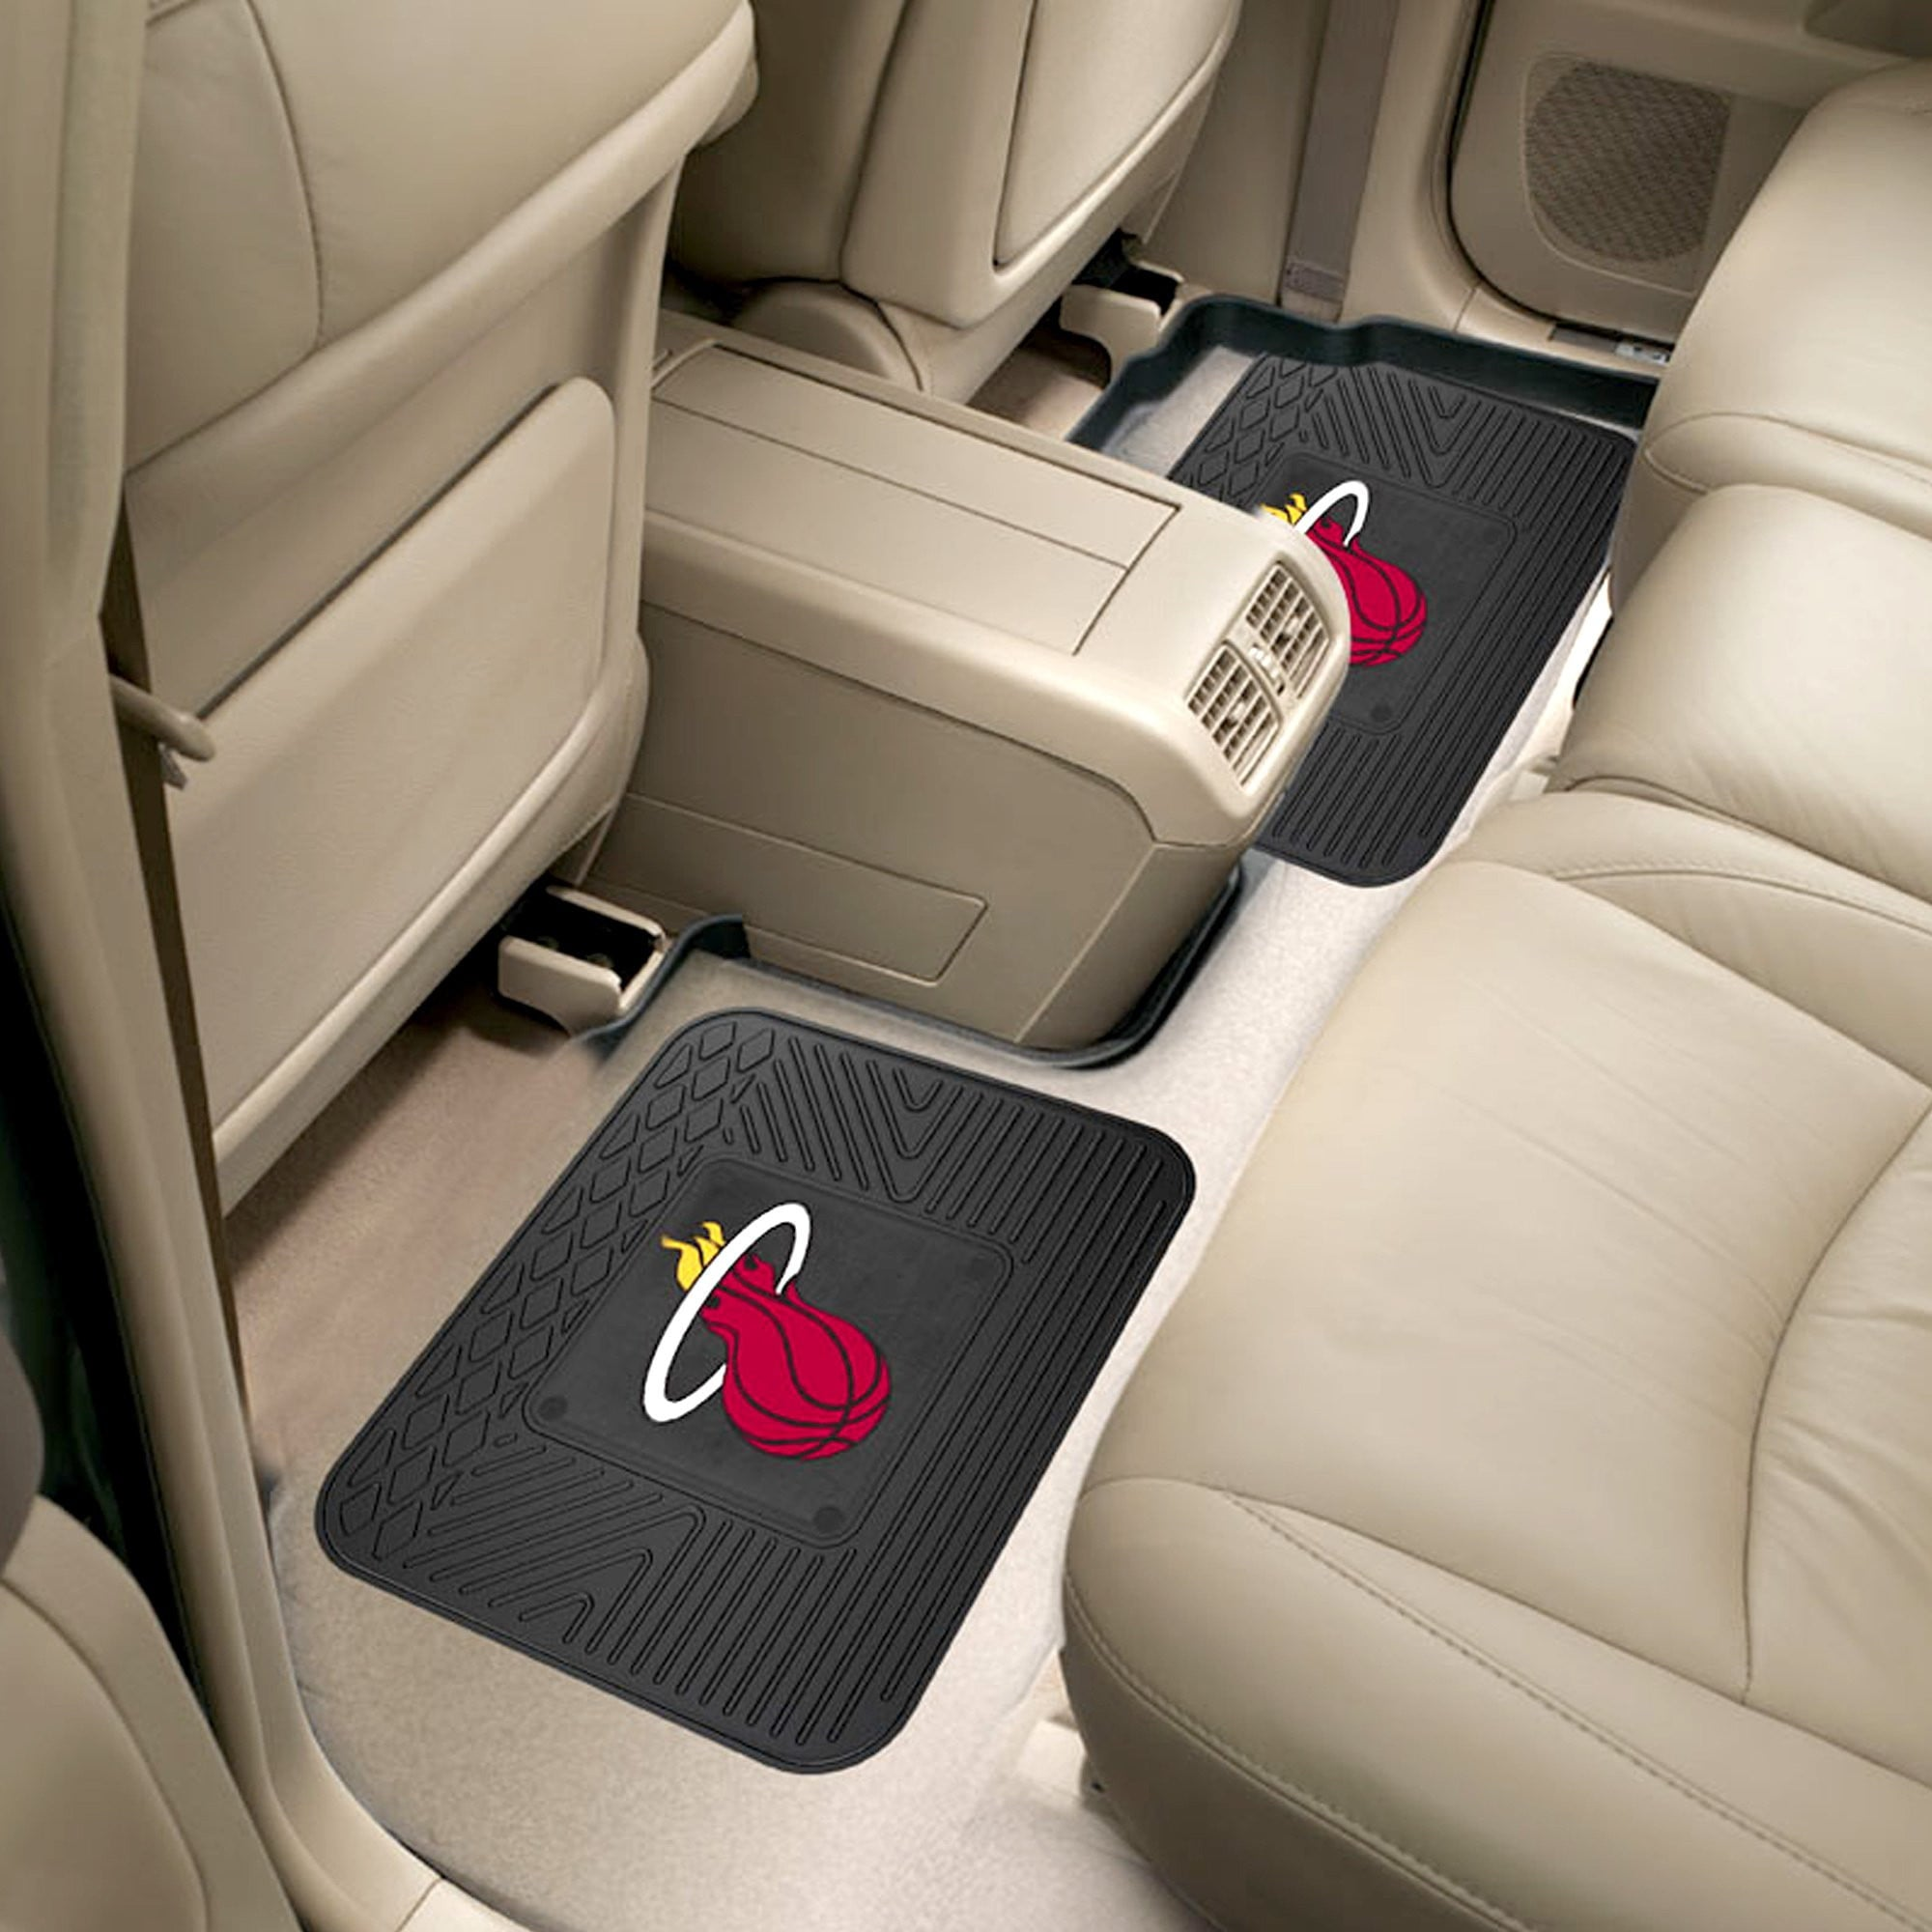 NBA - Miami Heat 2 Utility Car Mats